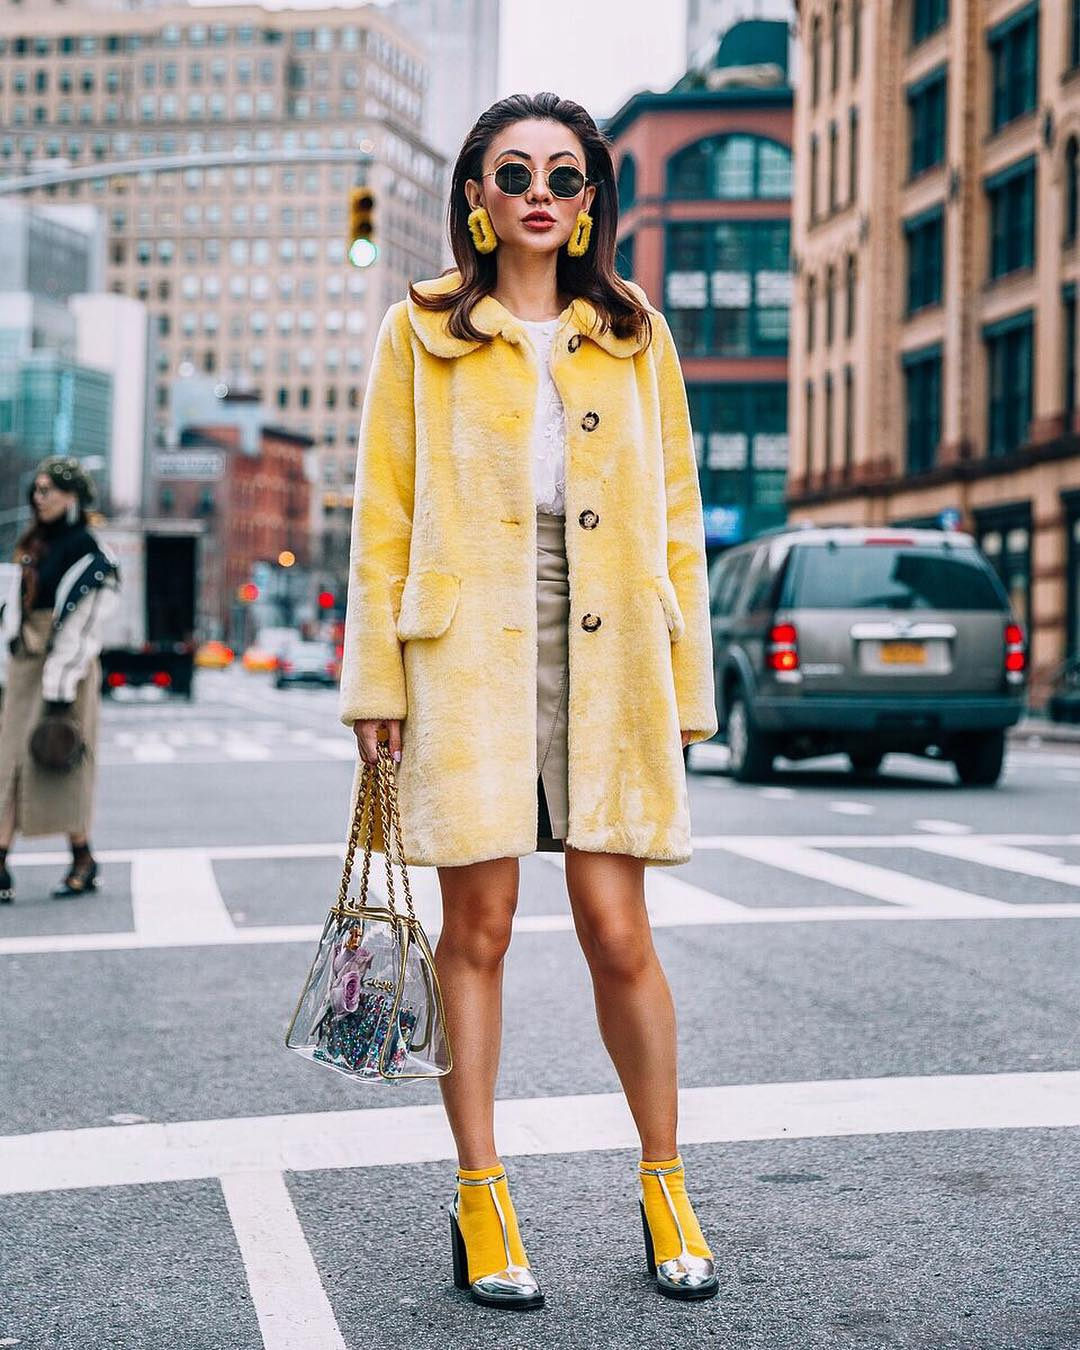 Retro Fall OOTD: Pastel Yellow Fur Coat And Silver Heels With Yellow Socks 2019